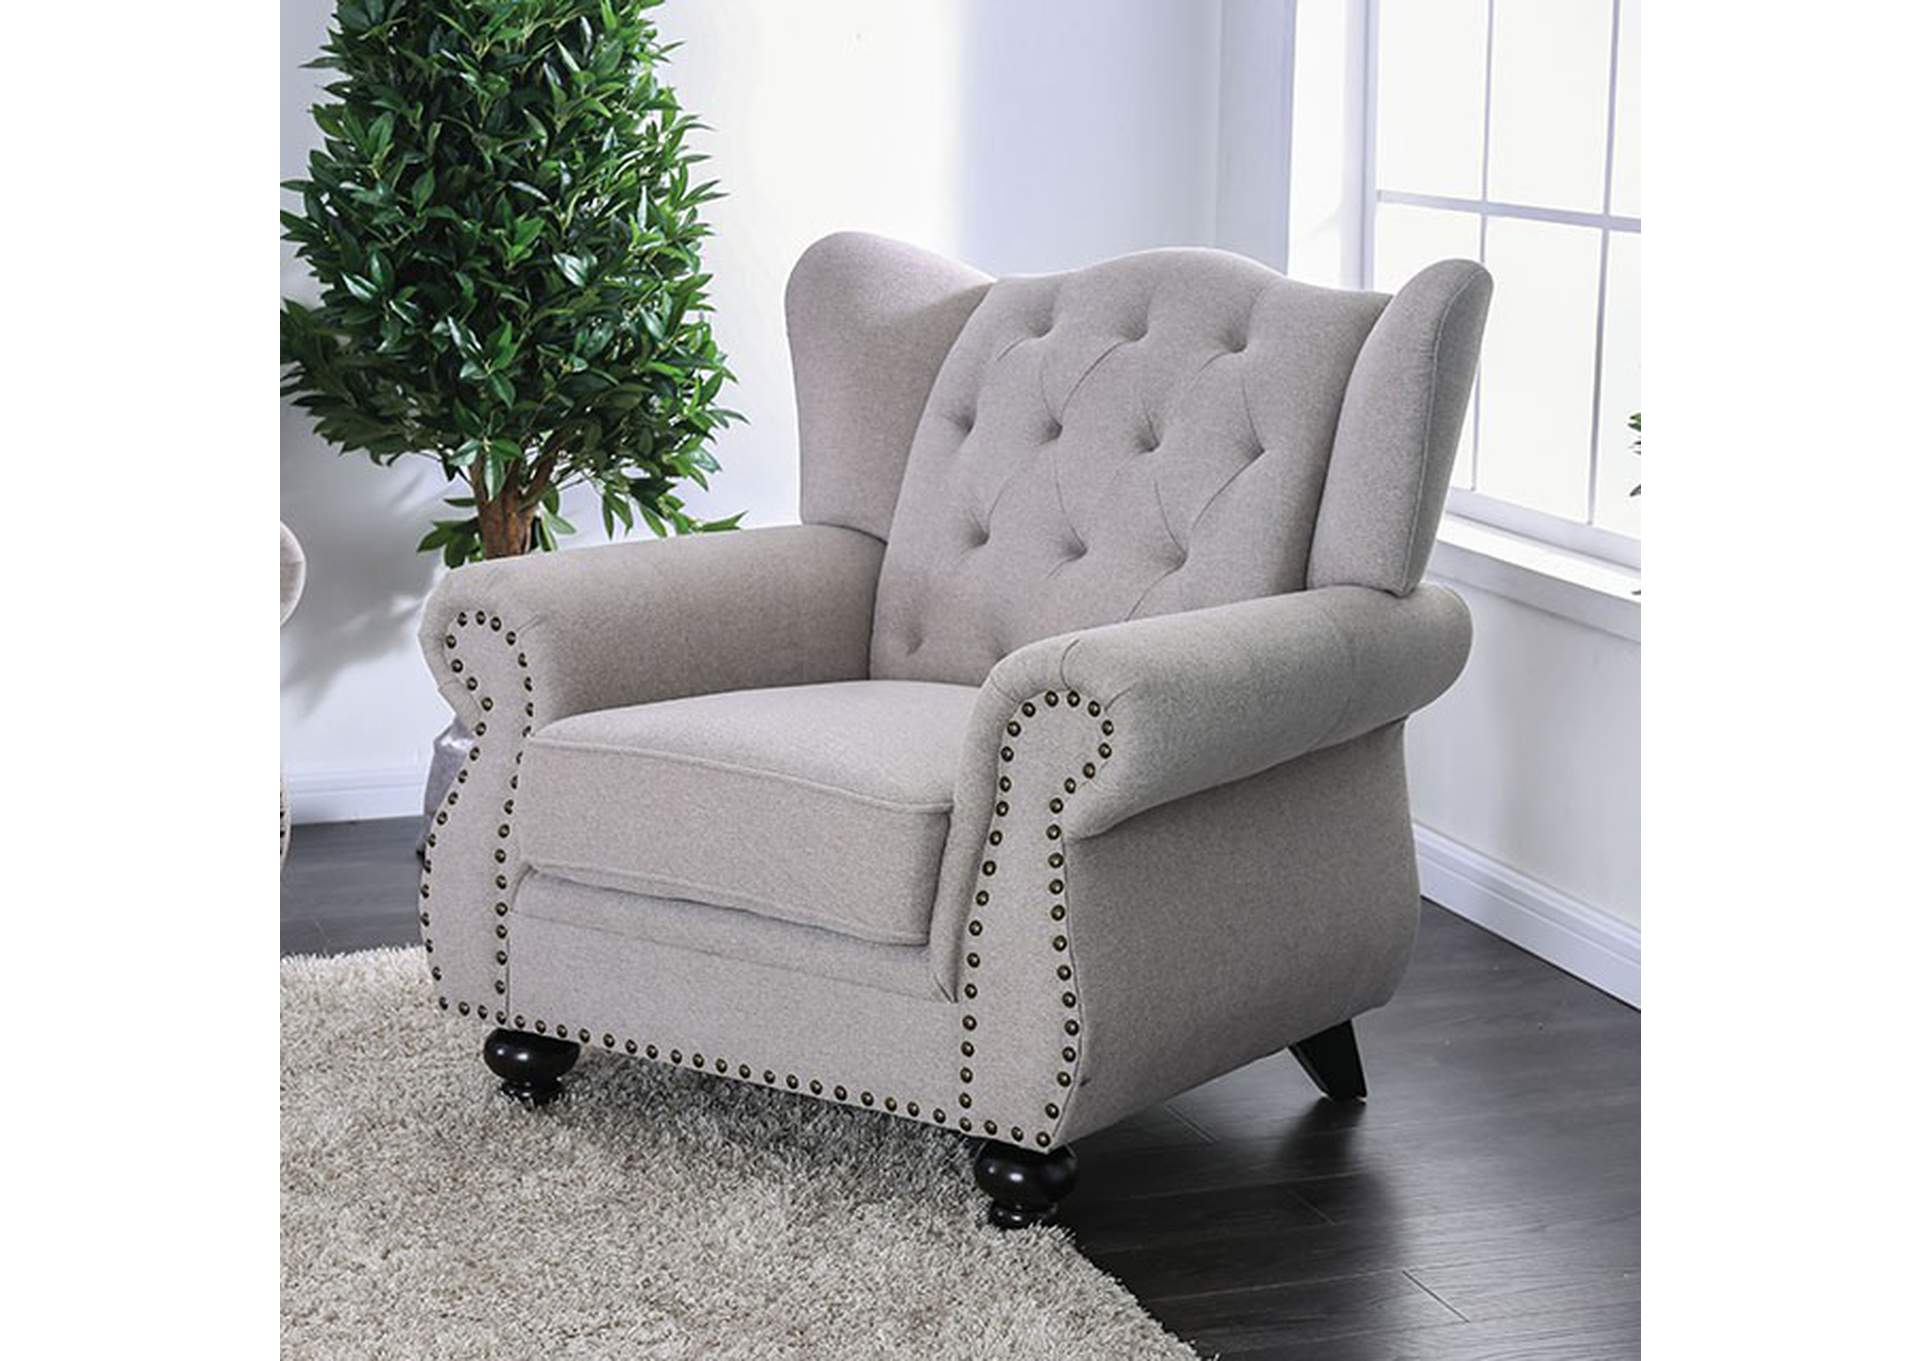 Ewloe Light Gray Chair,Furniture of America